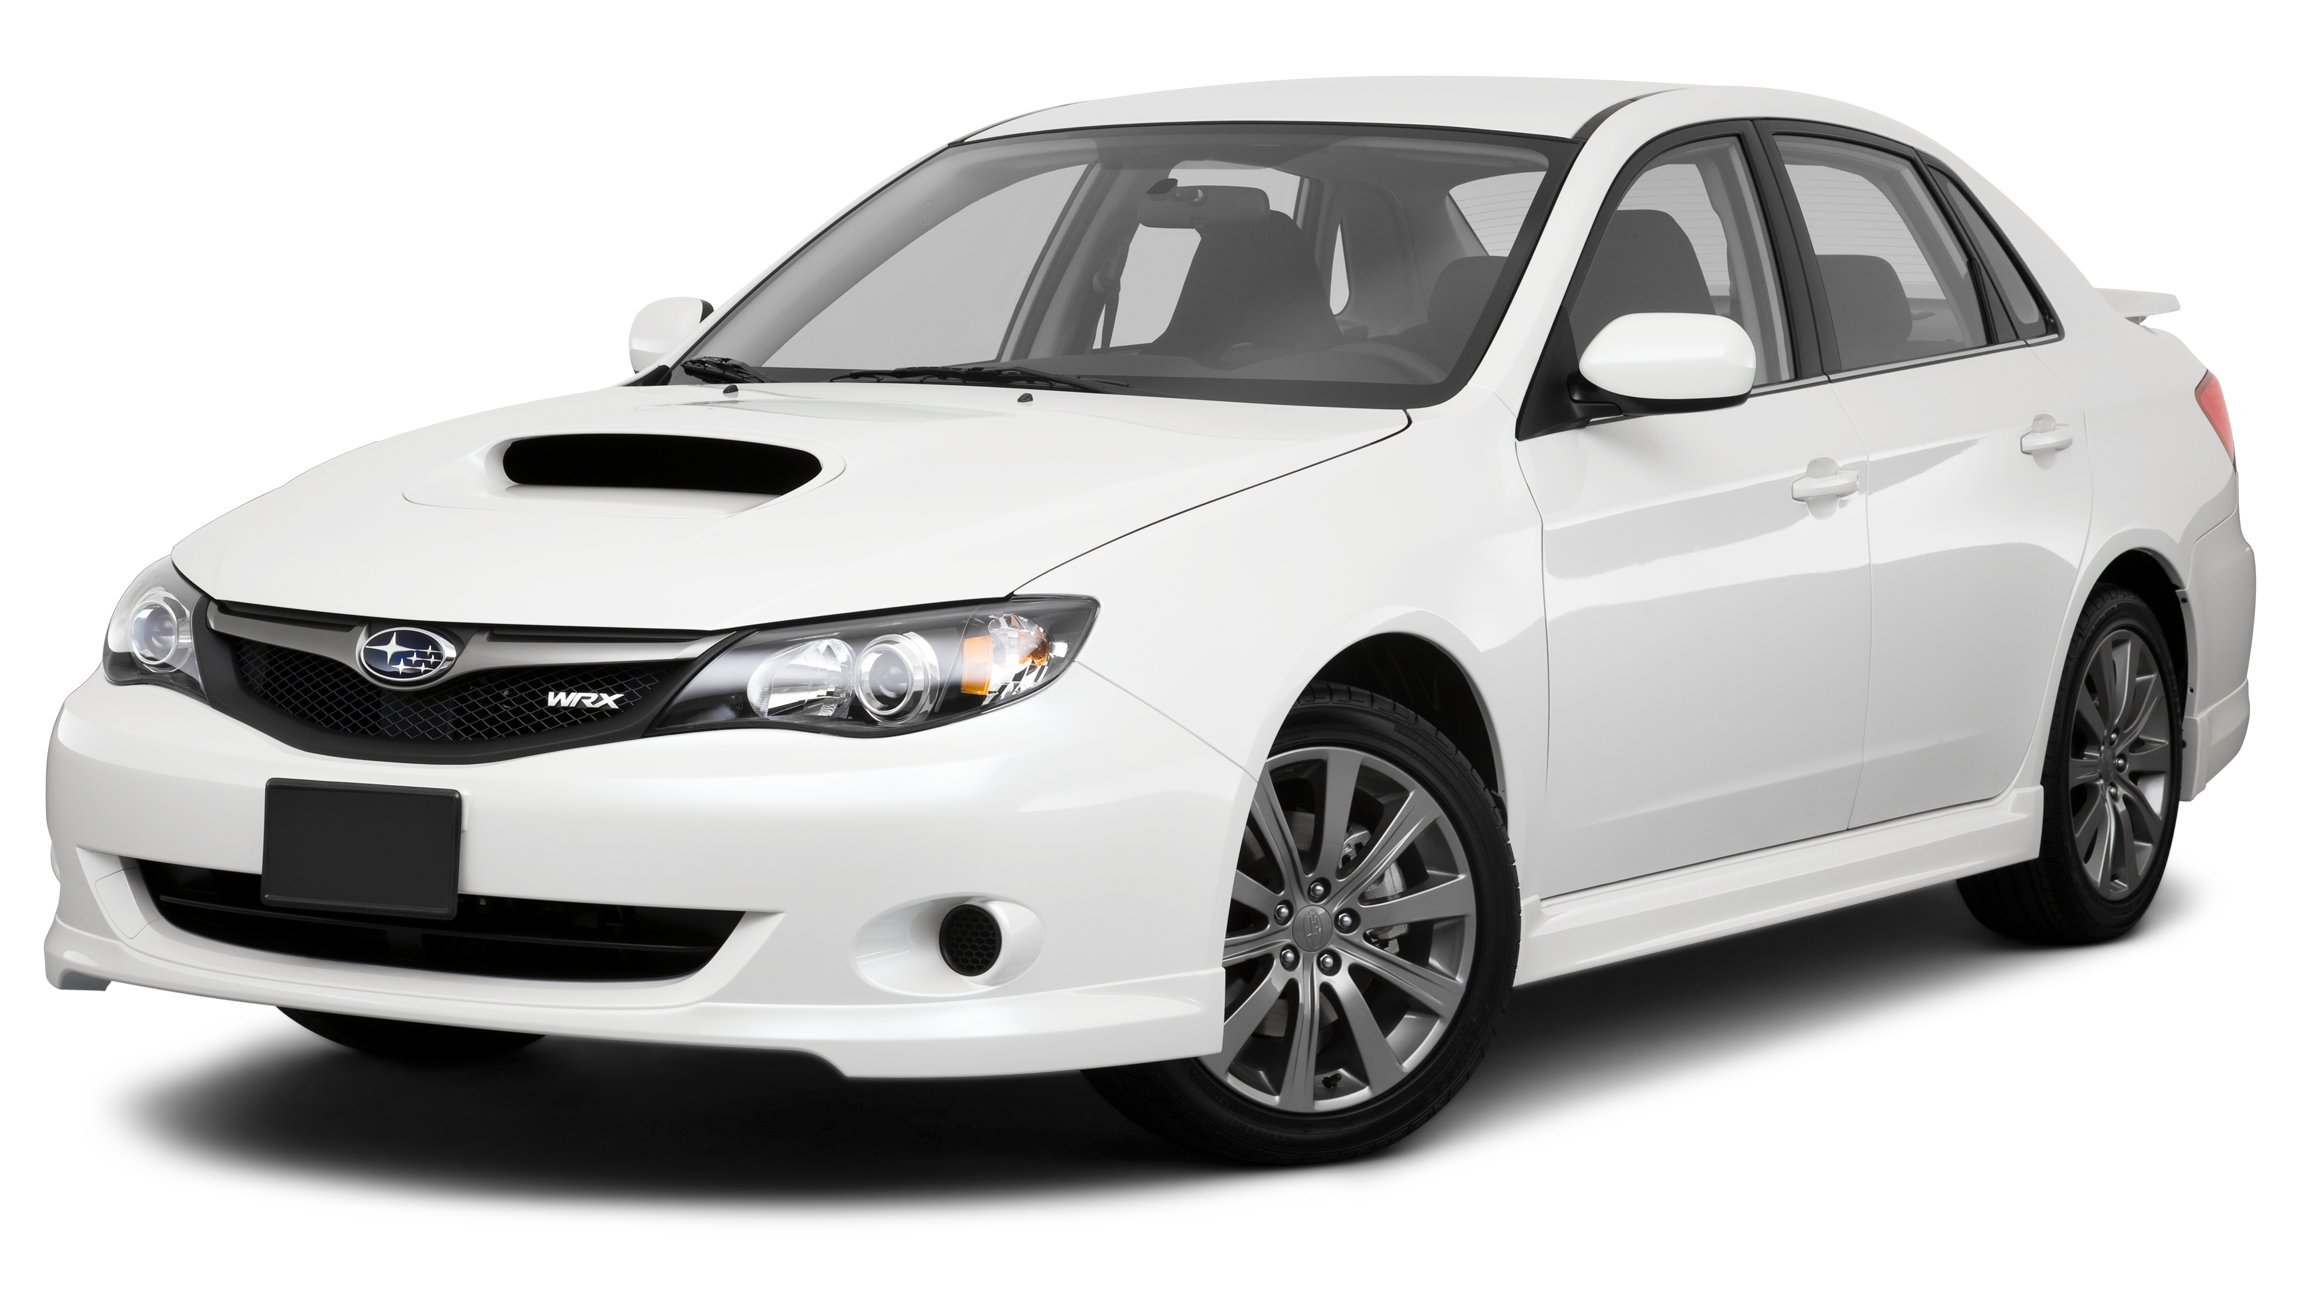 2010 subaru impreza reviews images and specs. Black Bedroom Furniture Sets. Home Design Ideas